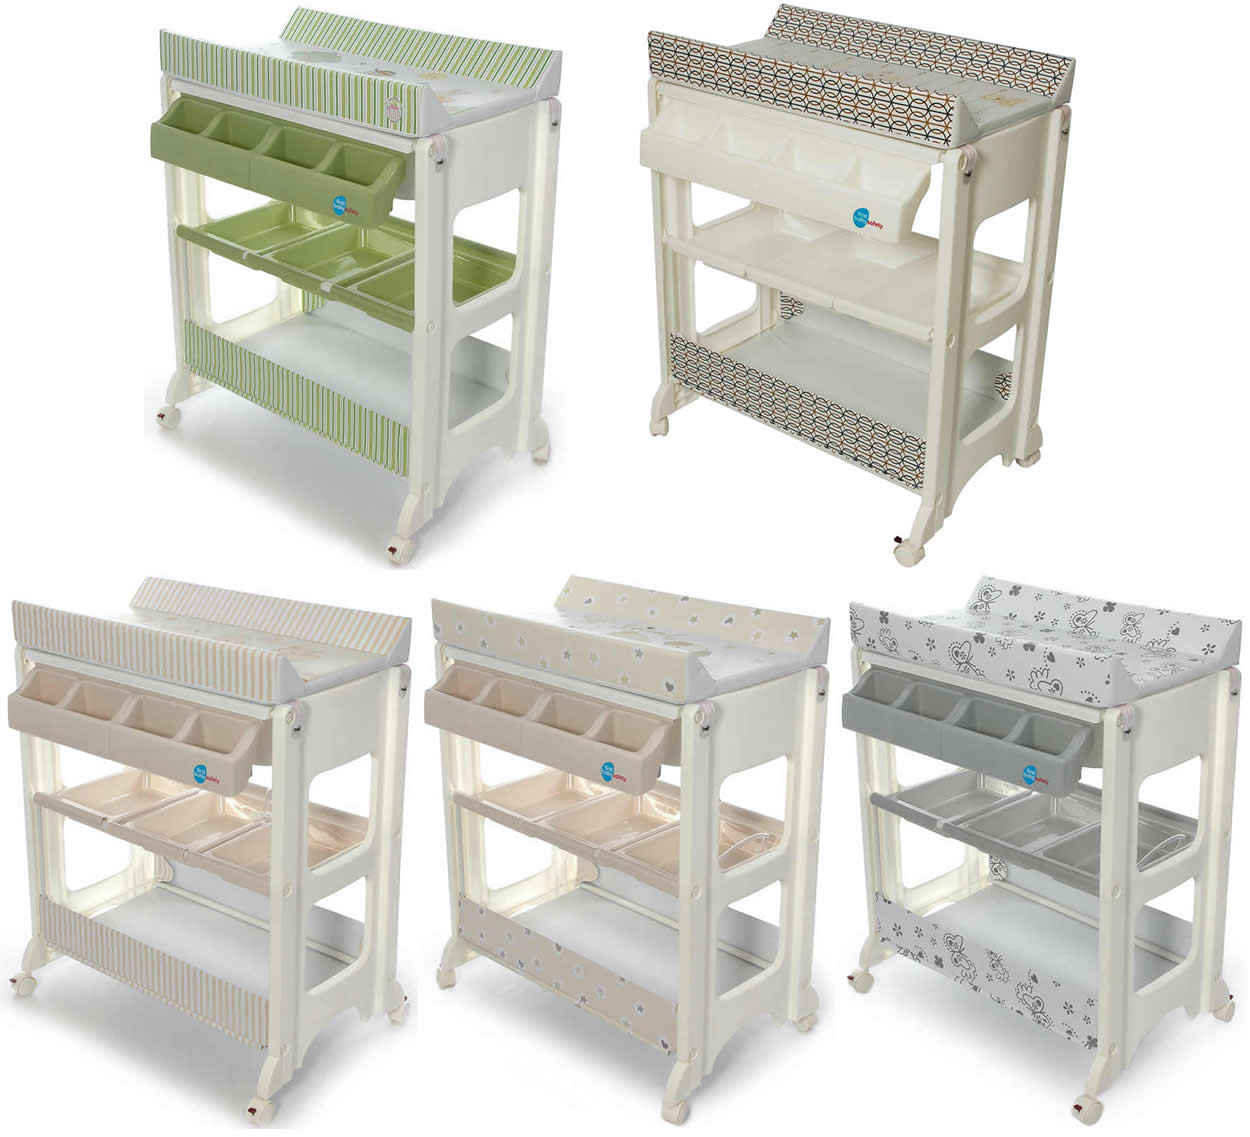 bade wickel kombination wickeltisch babywanne fahrbar ebay. Black Bedroom Furniture Sets. Home Design Ideas